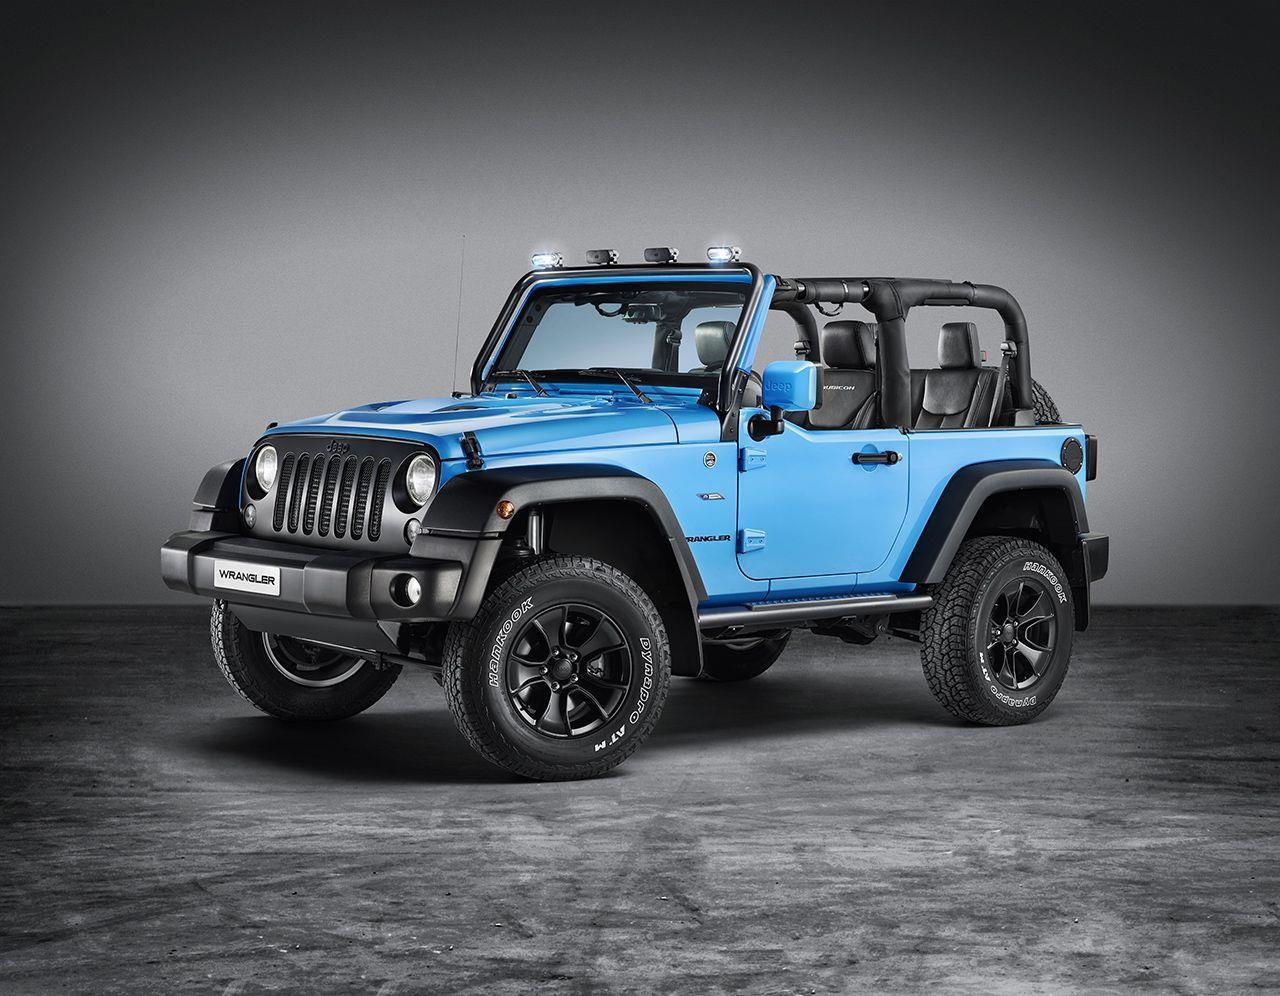 Jeep Chief Concept For Sale >> 2017 Jeep Wrangler Mopar ONE News and Information